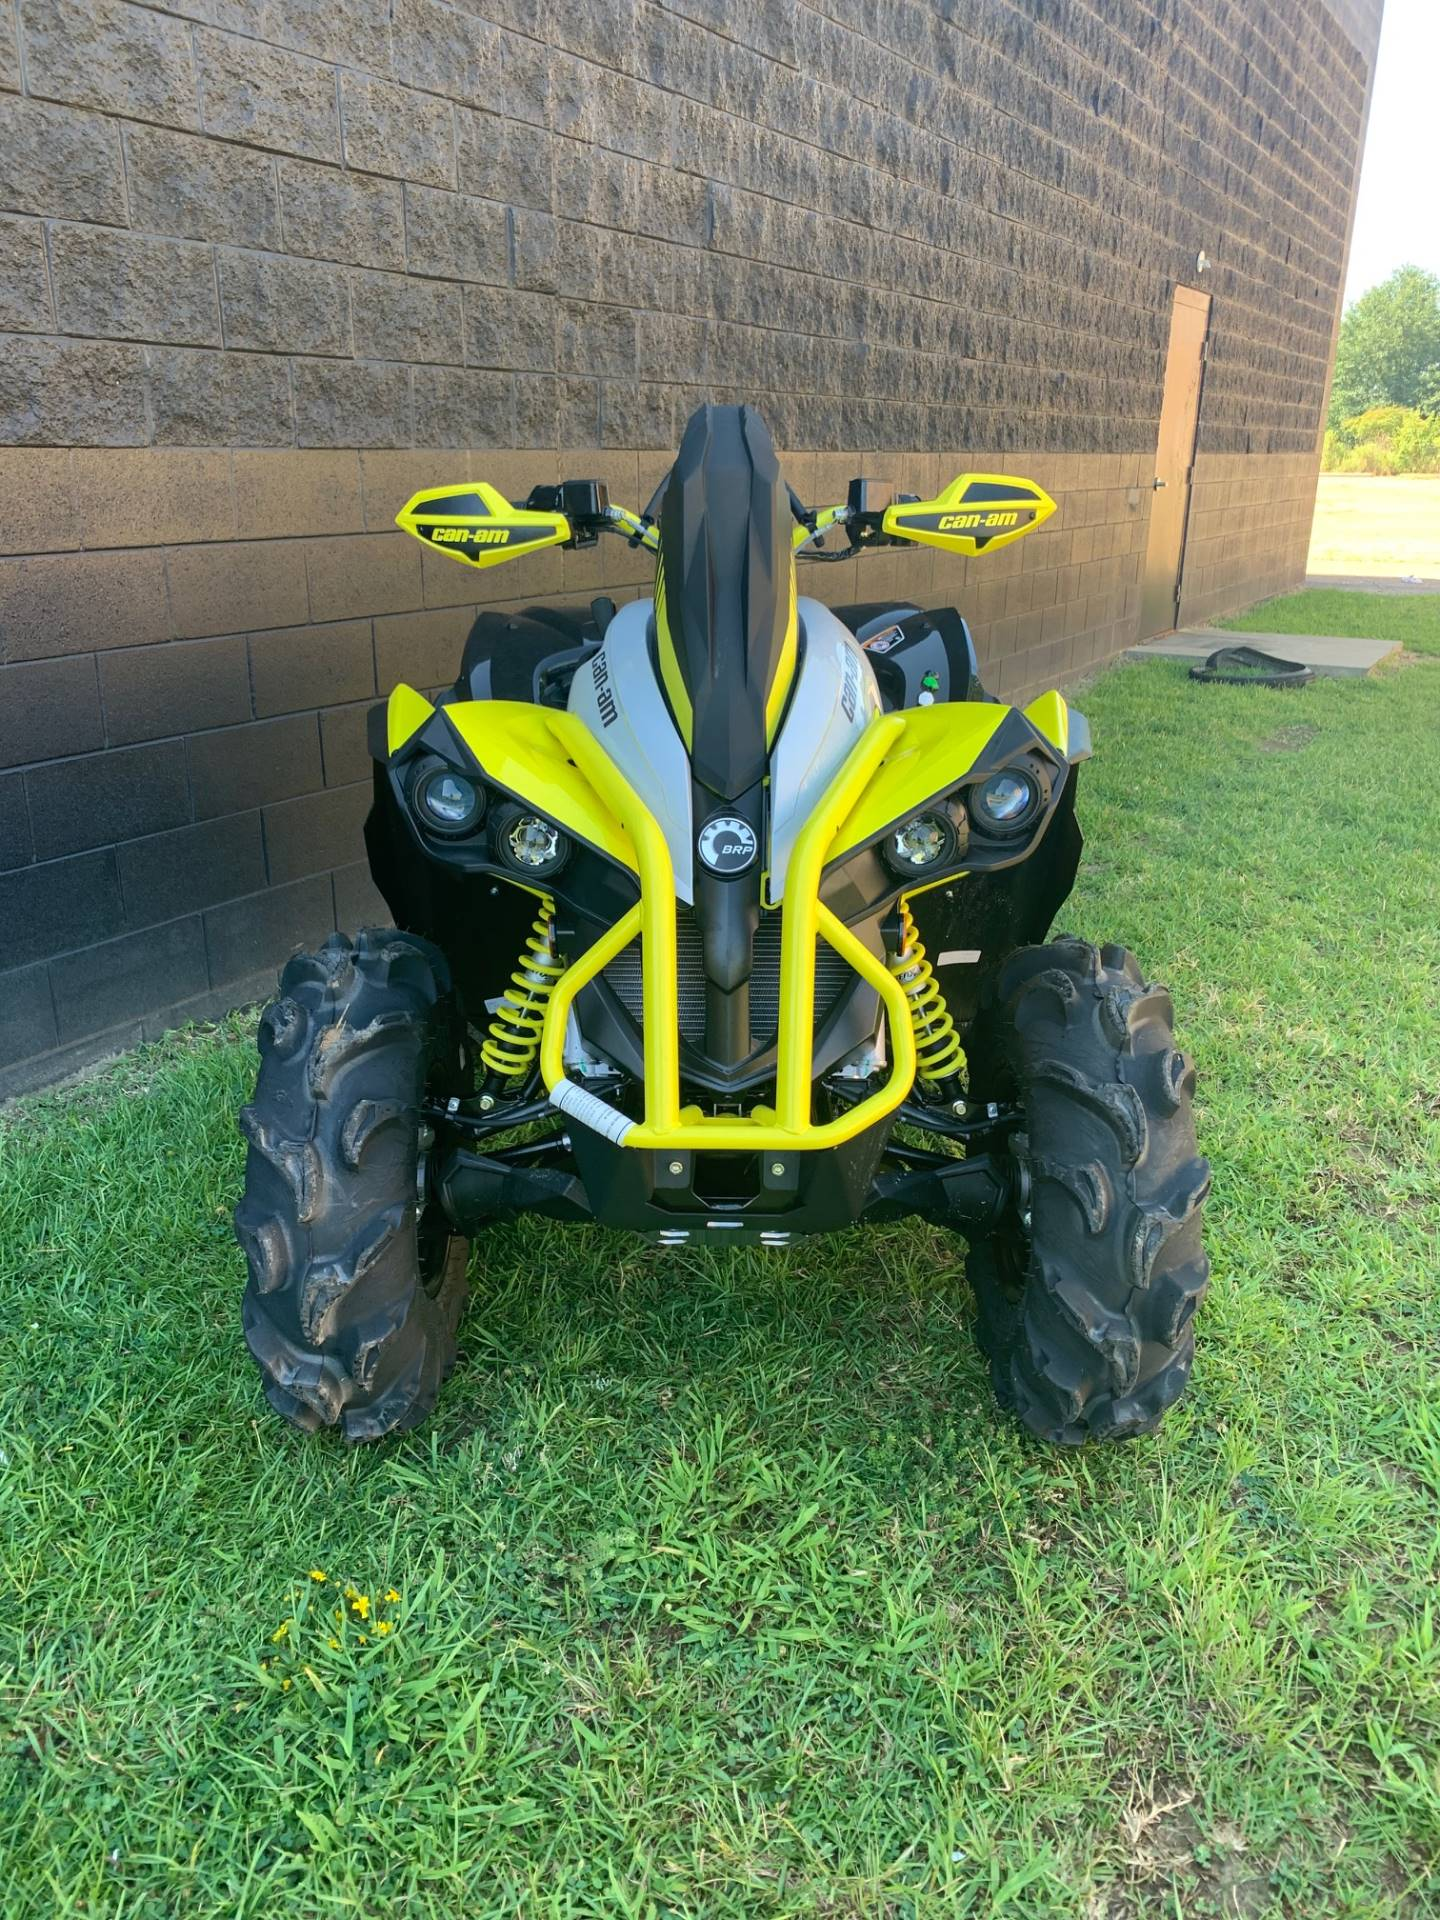 2019 Can-Am Renegade X MR 570 in West Monroe, Louisiana - Photo 4